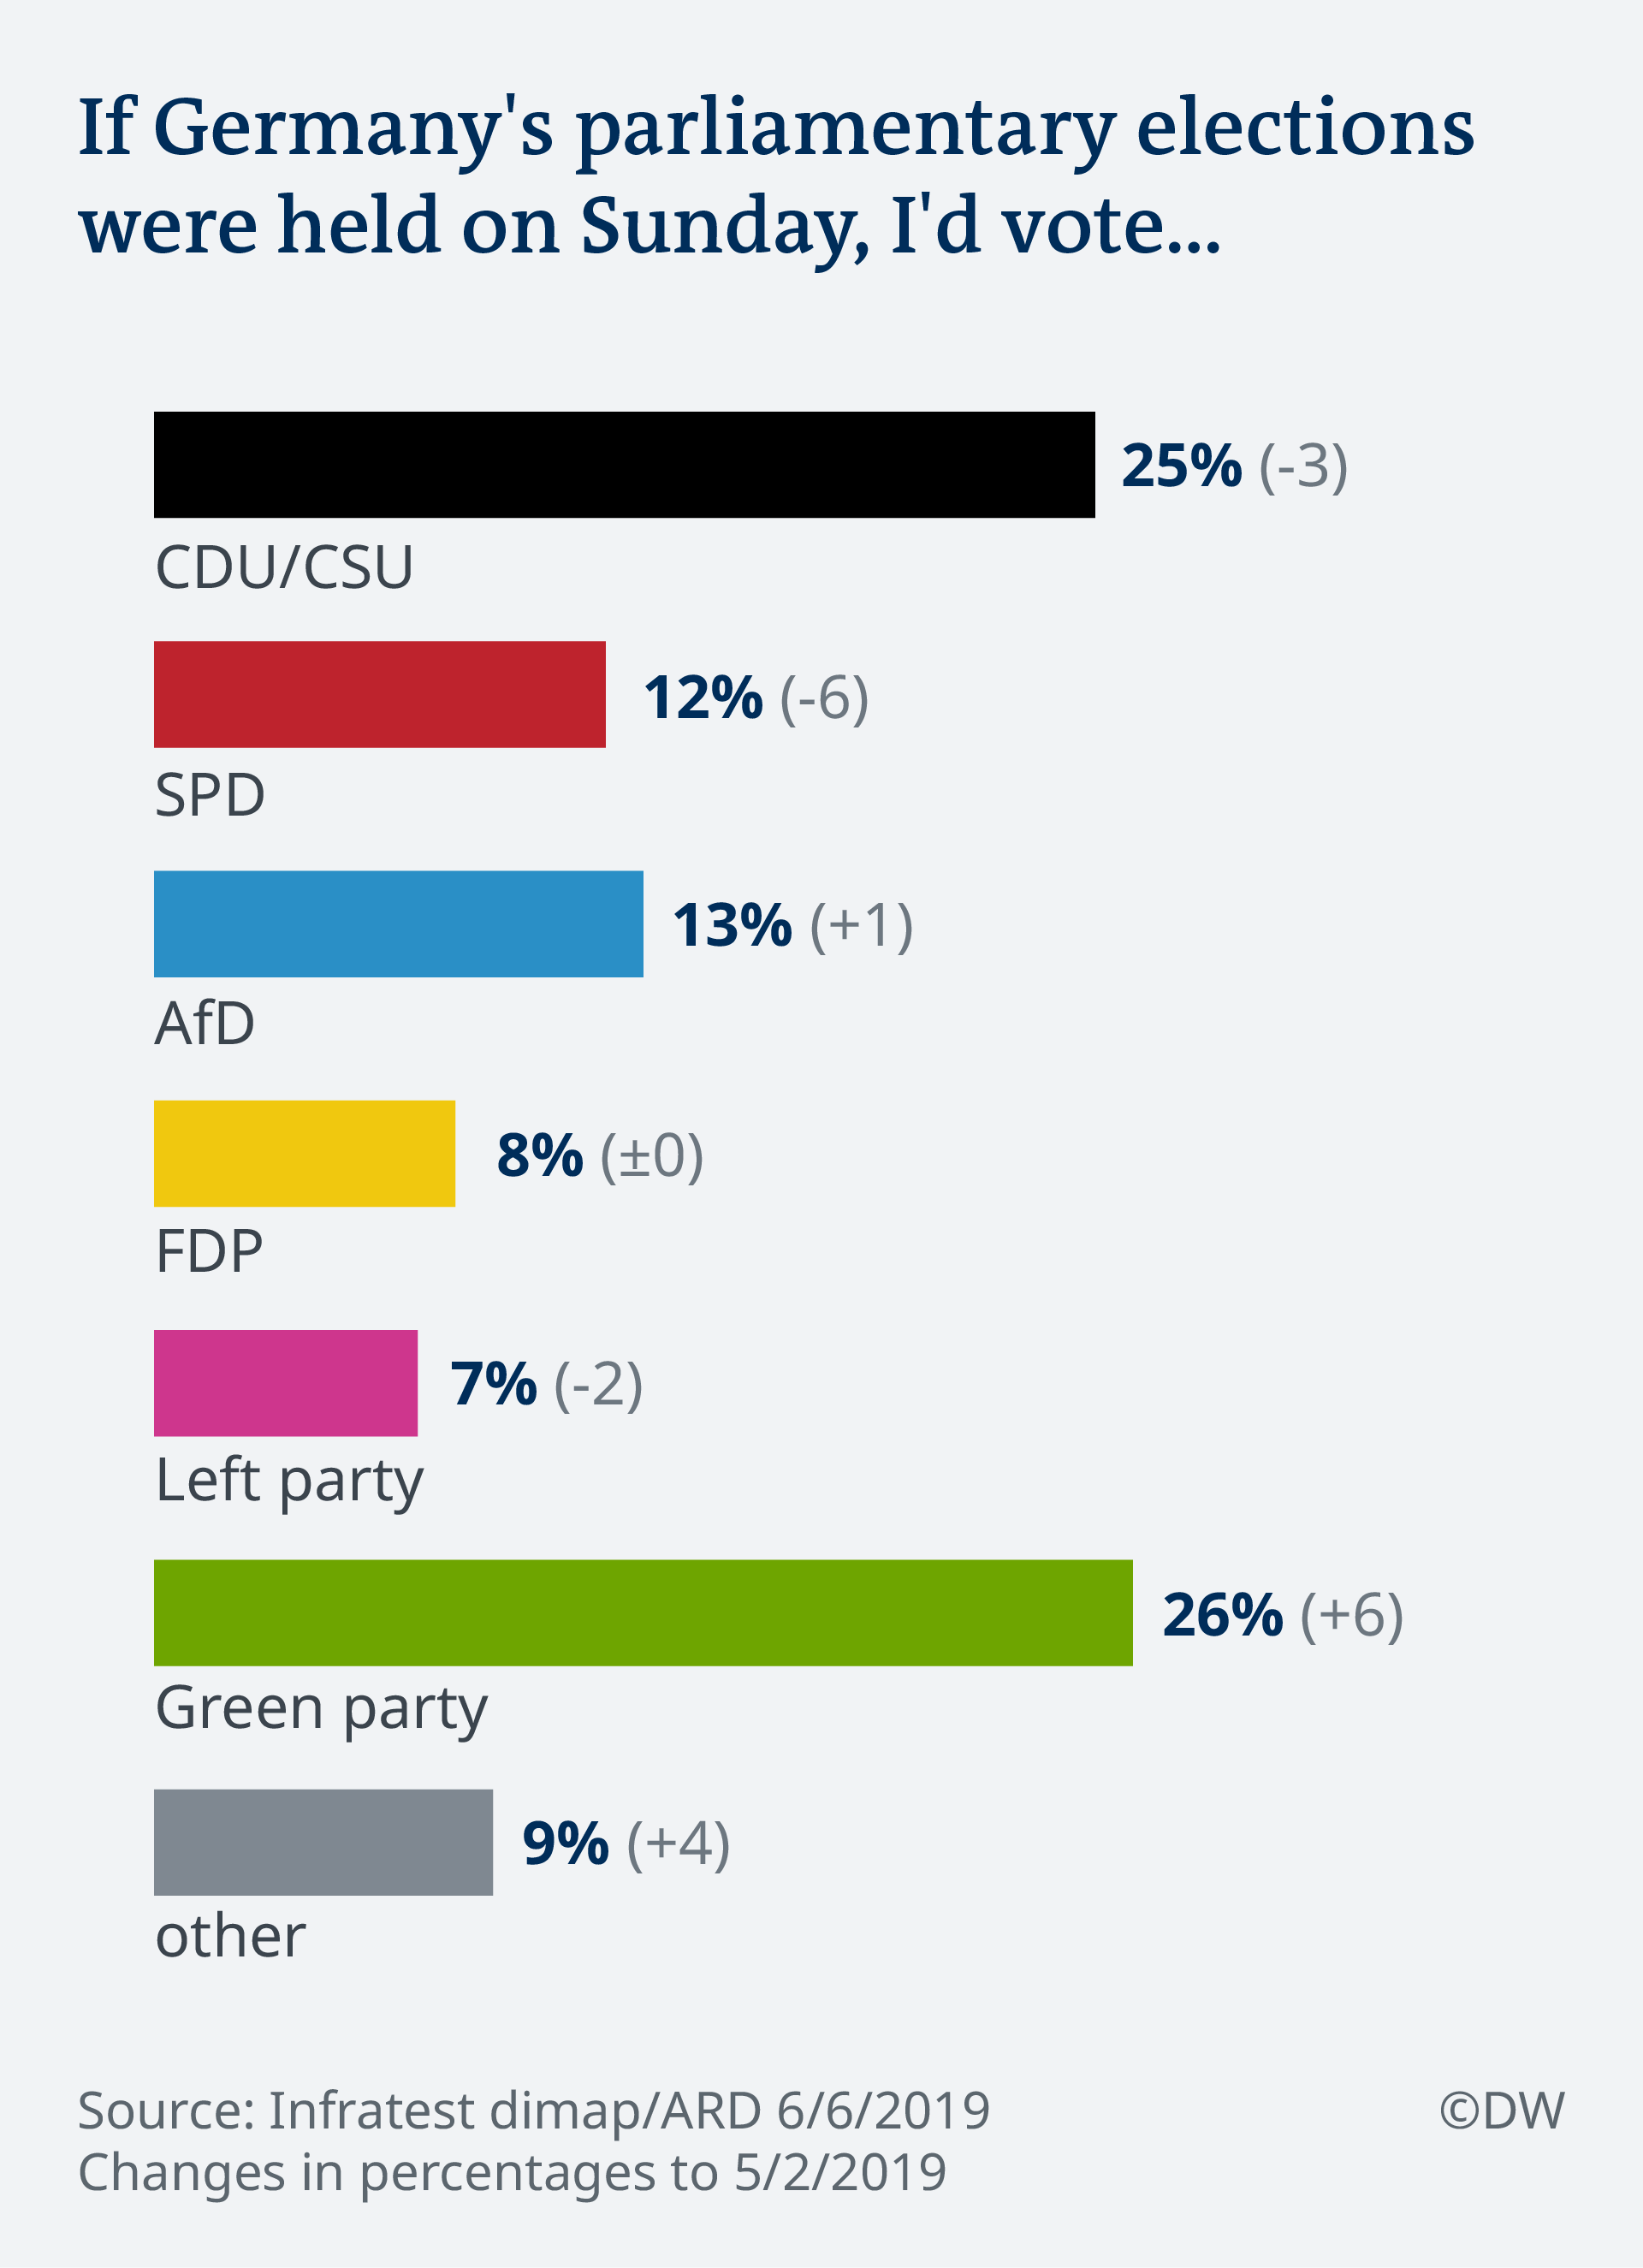 Infographic showing how Germans polled would vote if elections were held on Sunday - the Greens have 26%